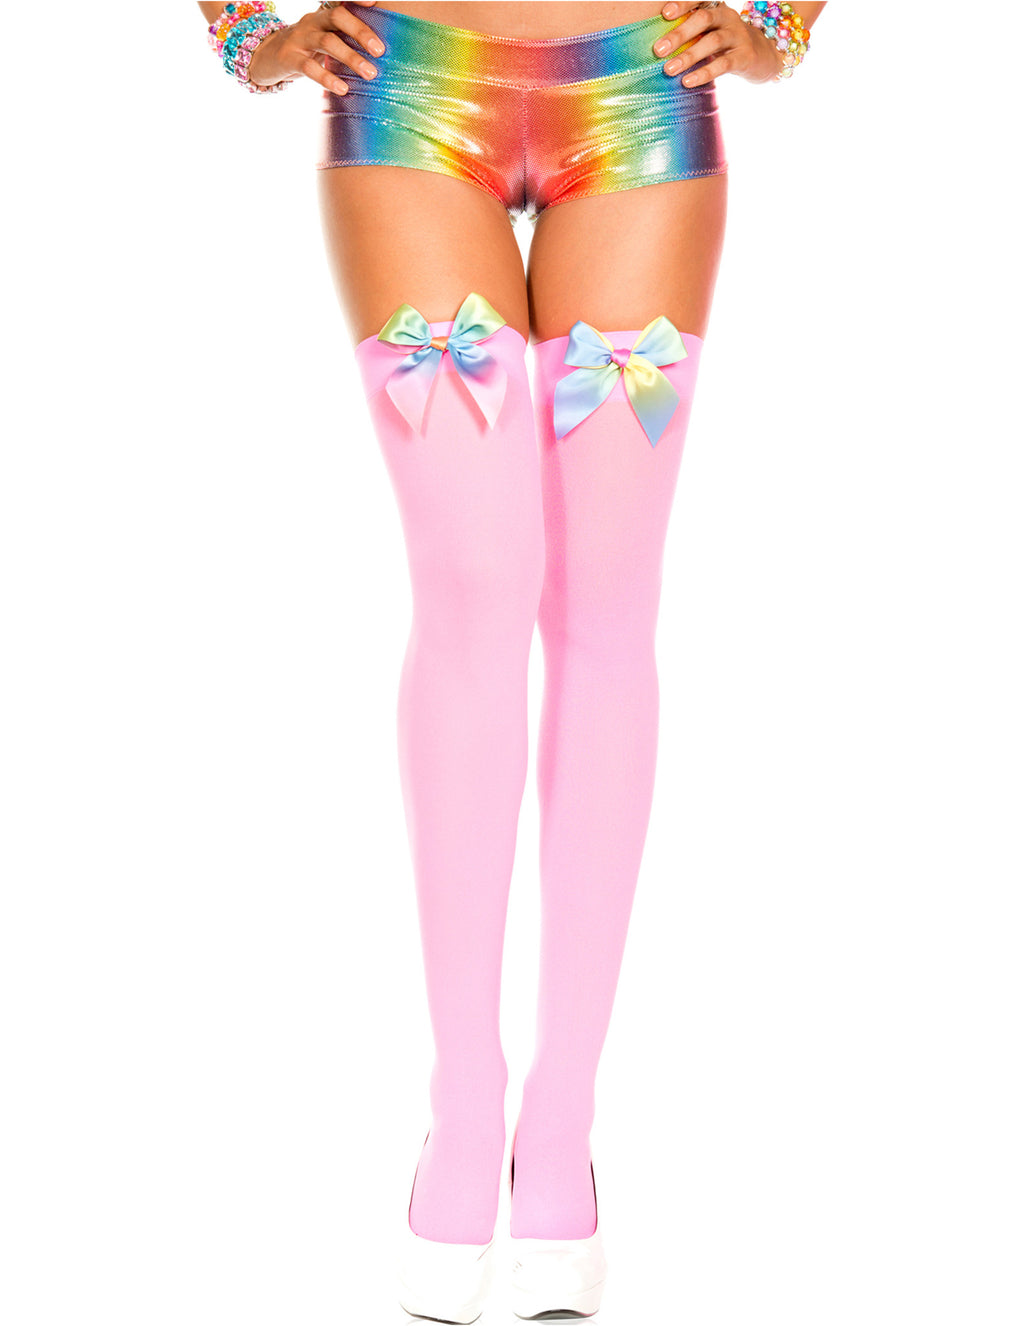 Neon Pink Opaque Rainbow Satin Bow Thigh High, One Size